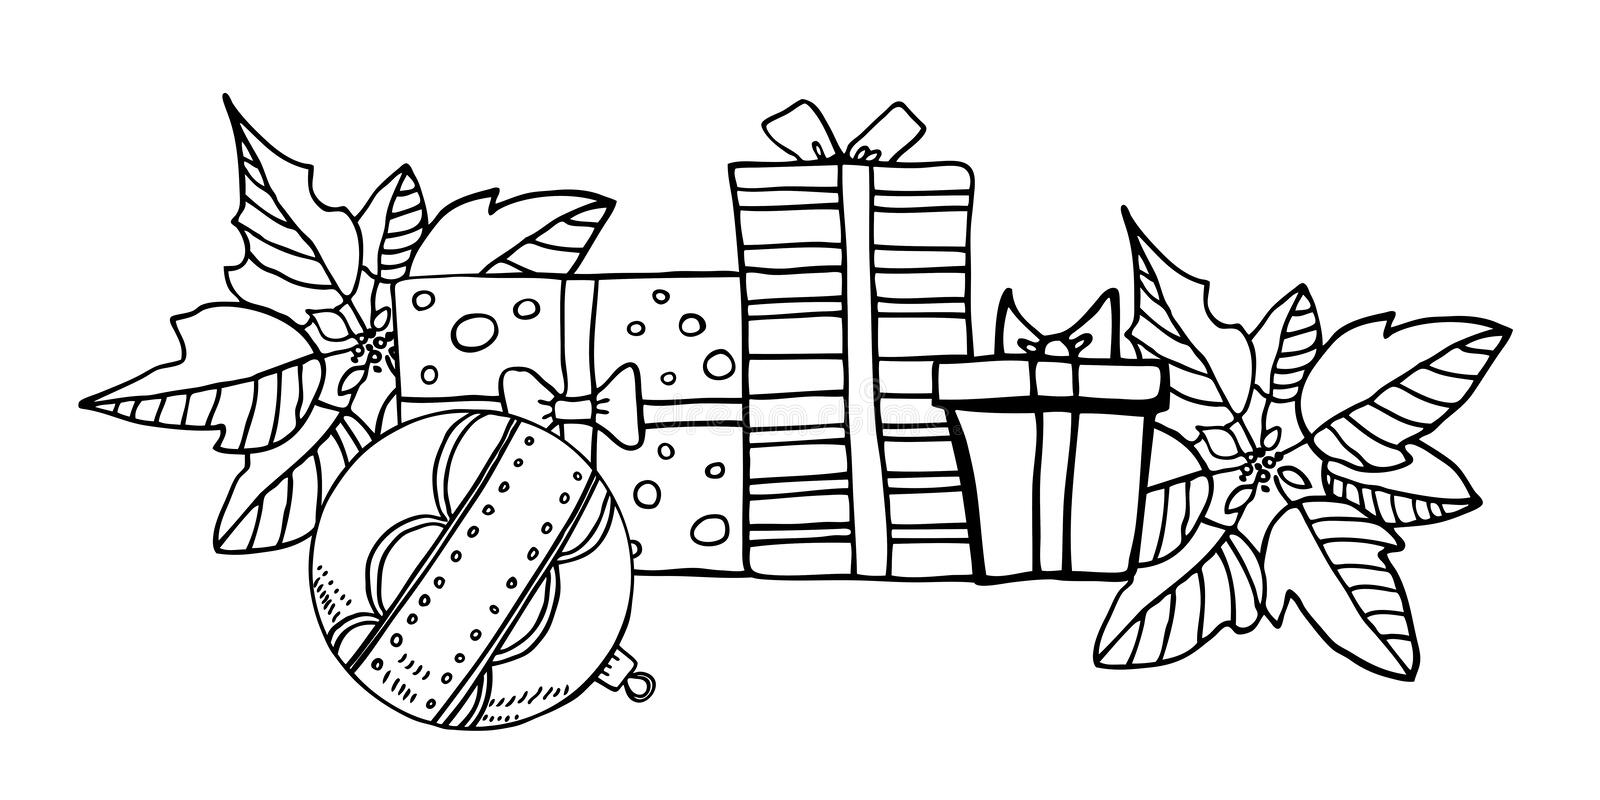 Composition with three gift boxes, Christmas toys and poinsettia plants. Hand drawn vector illustration of New Year decorations stock illustration